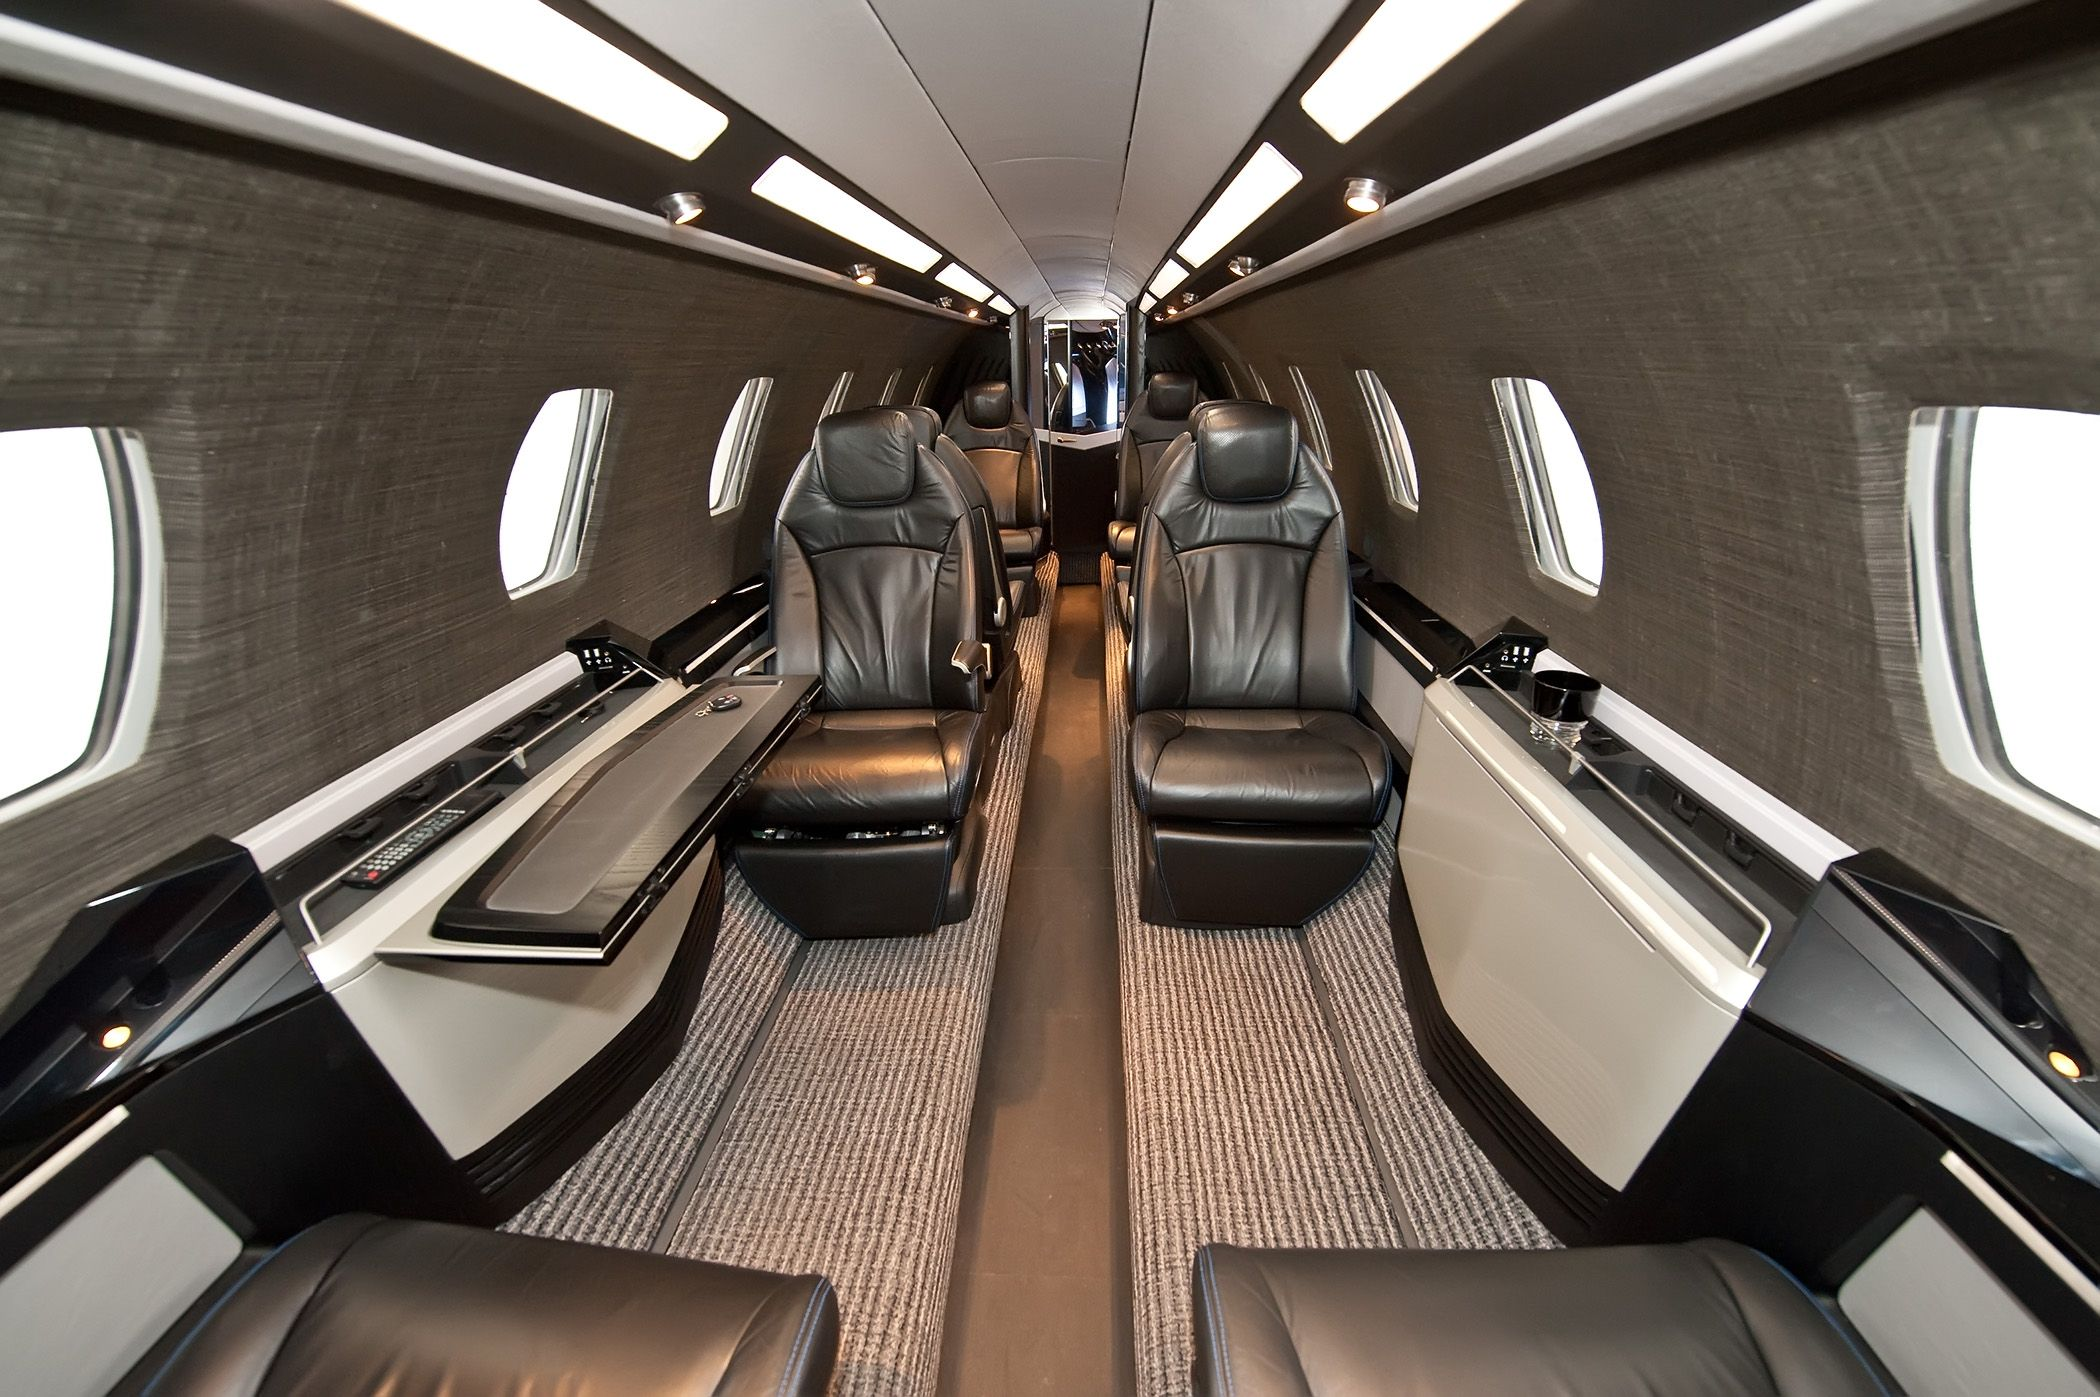 Private jet interior furnished like a vintage train aviation - Find This Pin And More On Aircraft Interiors